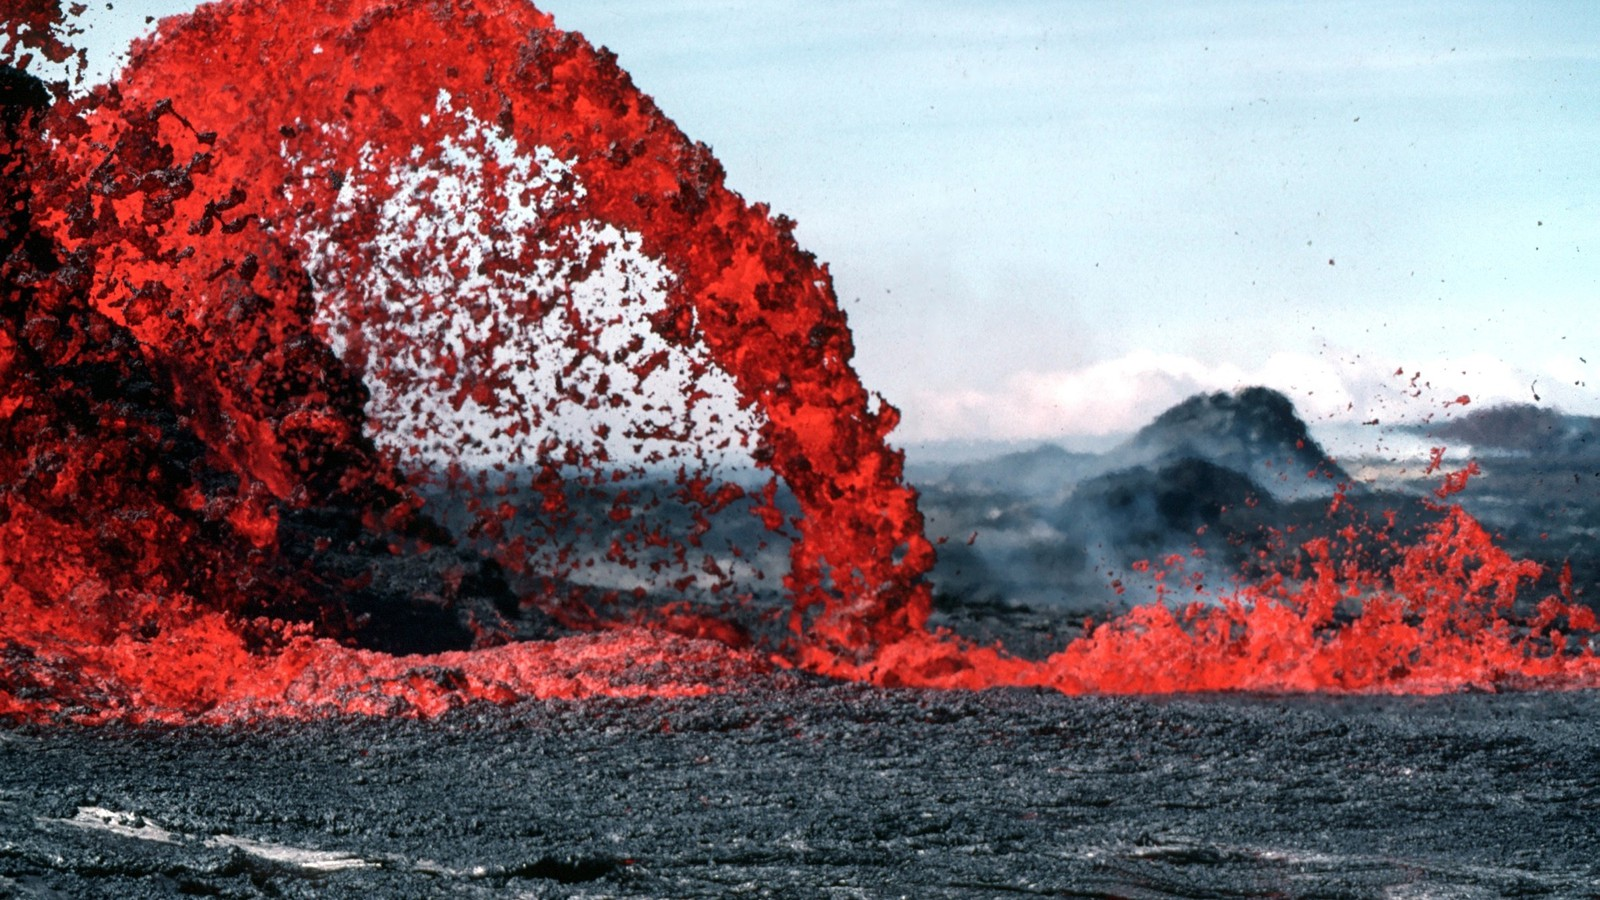 volcanoes 2019 news and scientific articles on live science - HD 1600×900